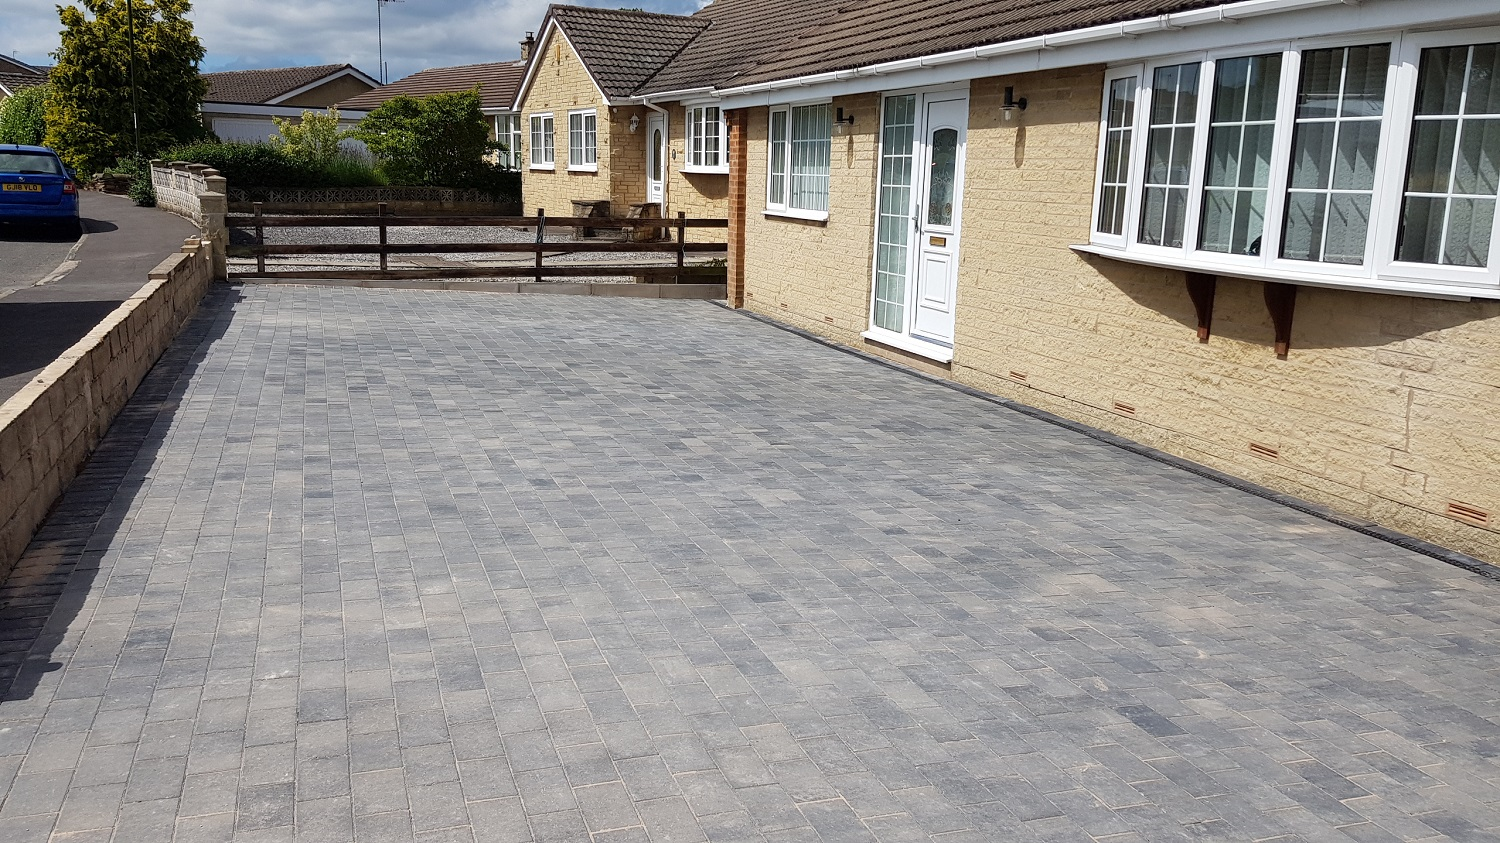 C34 Plaspave Premia Granite Stone Block Paving Driveway at Linacre Woods in Chesterfield